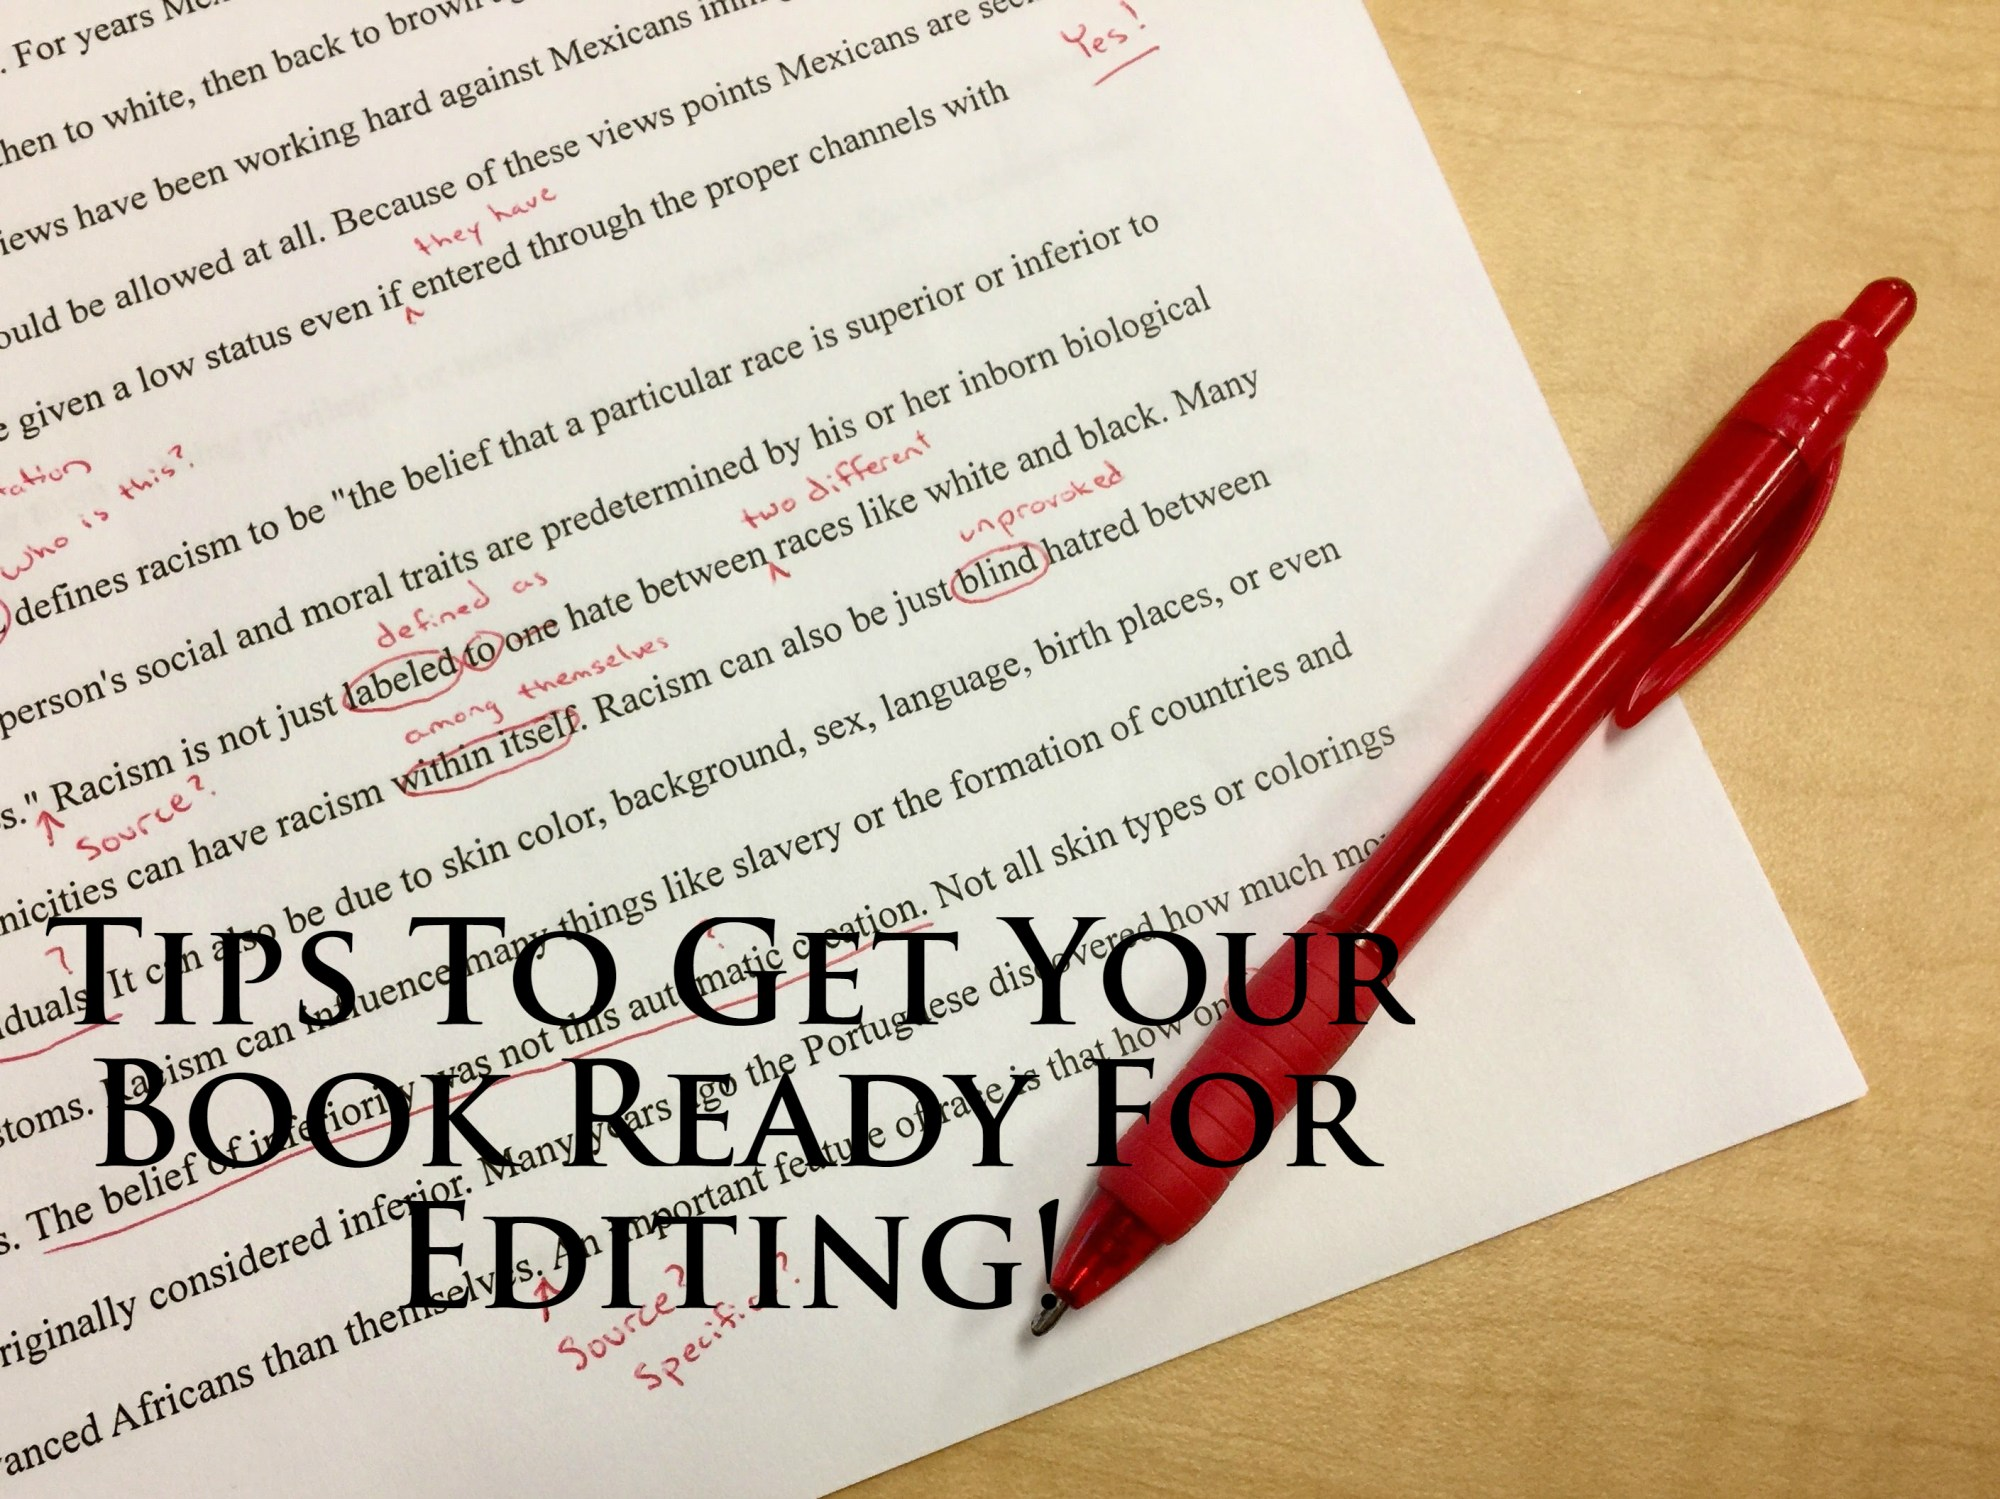 Tips To Get Your Book Ready For Editing!